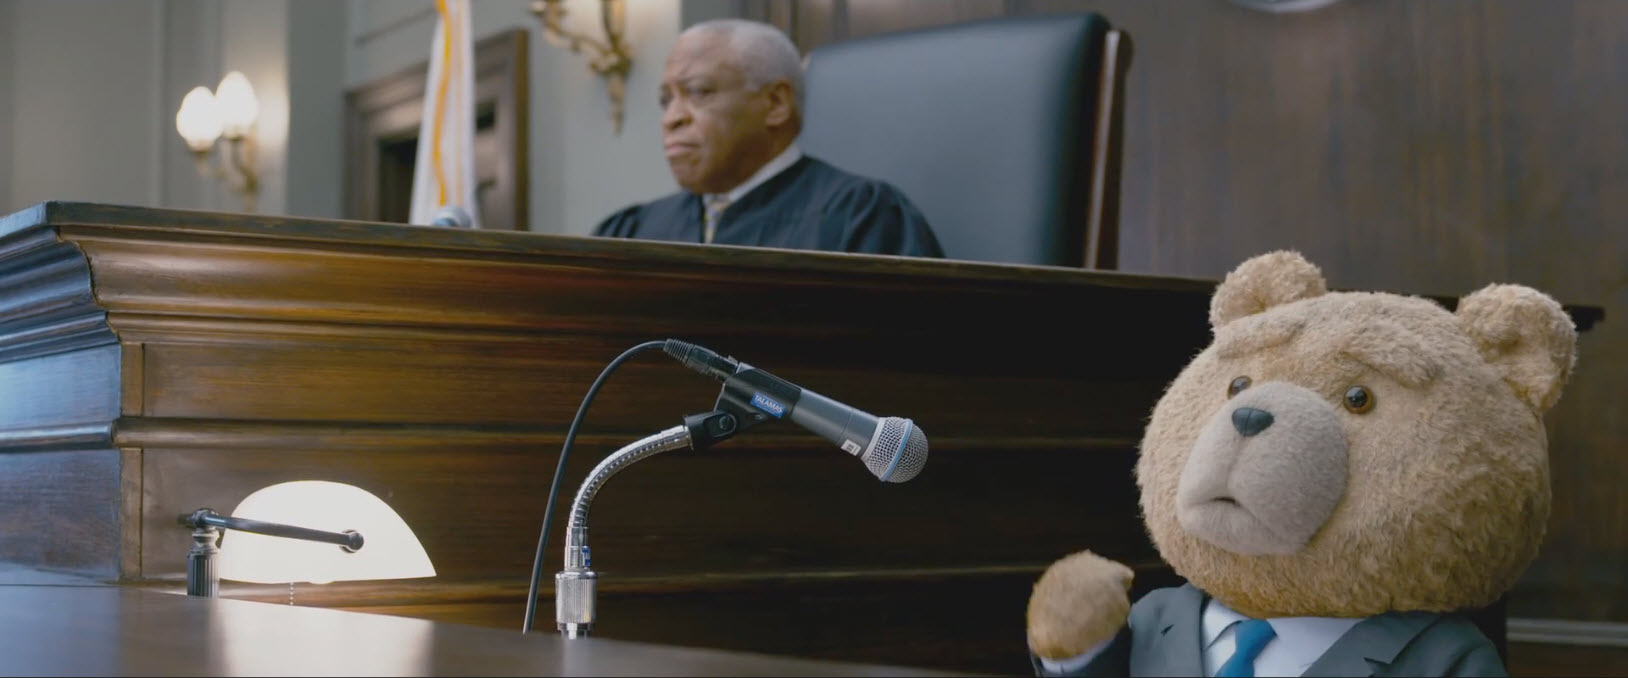 ted 2 on trial for civil rights gay marriage images